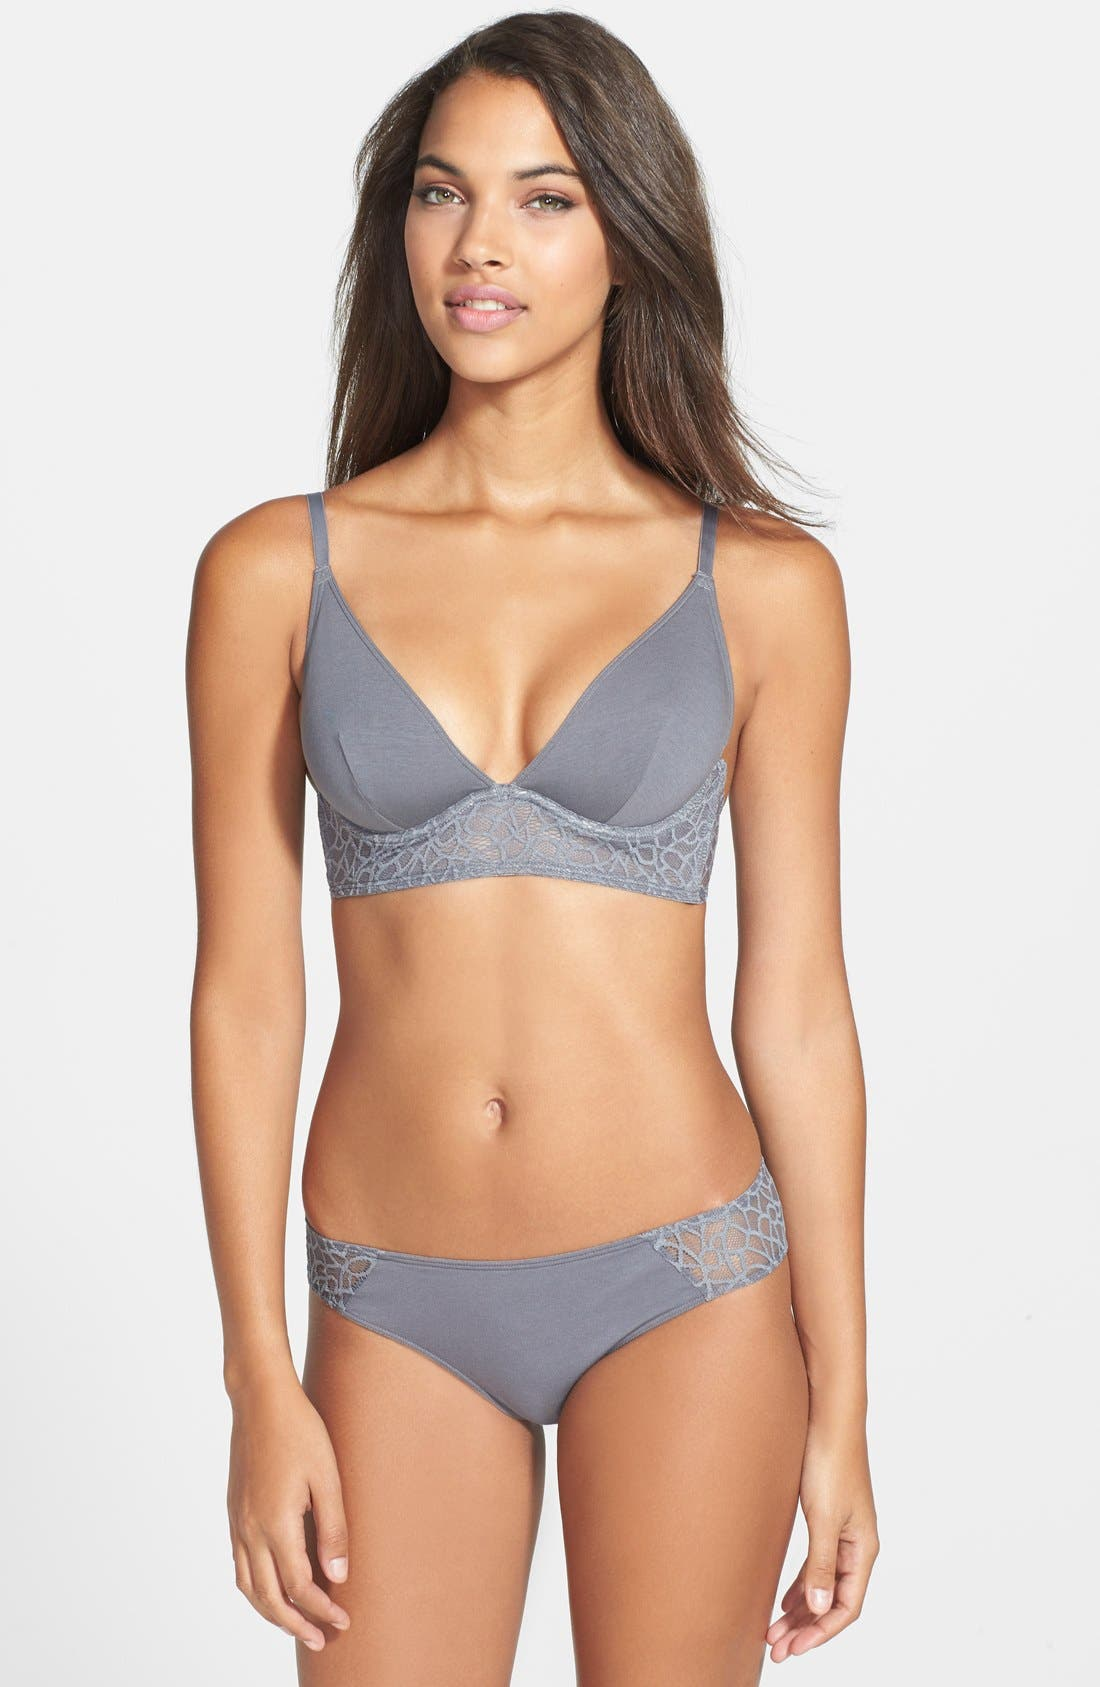 Alternate Image 3  - Studio by La Perla 'Iris' Underwire Longline Triangle Bra